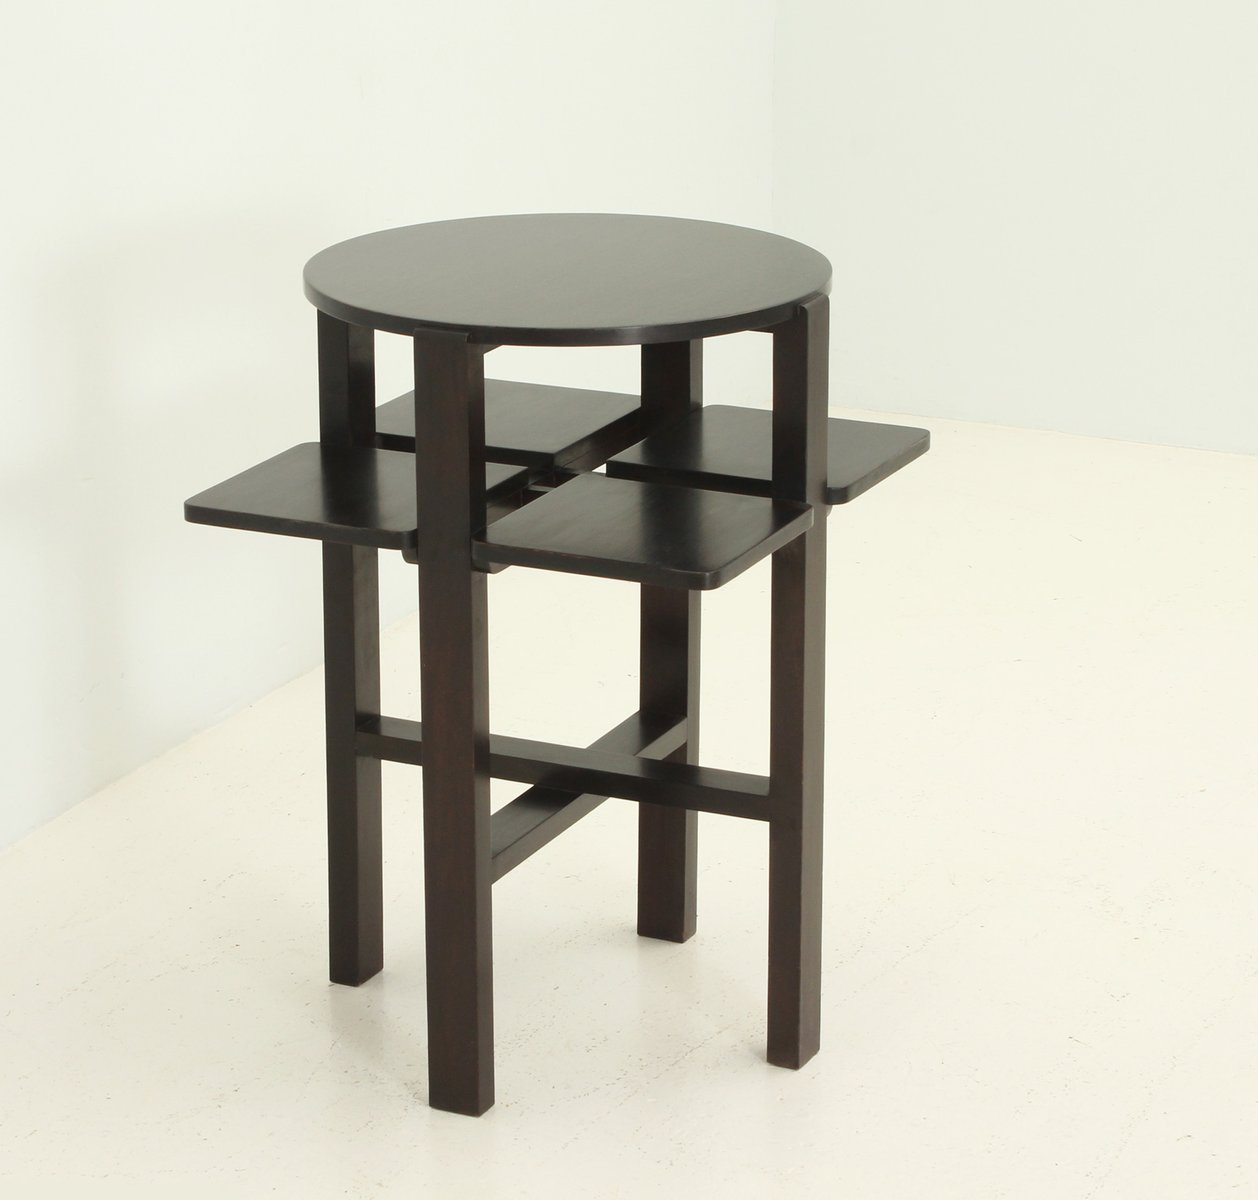 domino table by charles rennie mackintosh for bd barcelona 1986 for sale at pamono. Black Bedroom Furniture Sets. Home Design Ideas